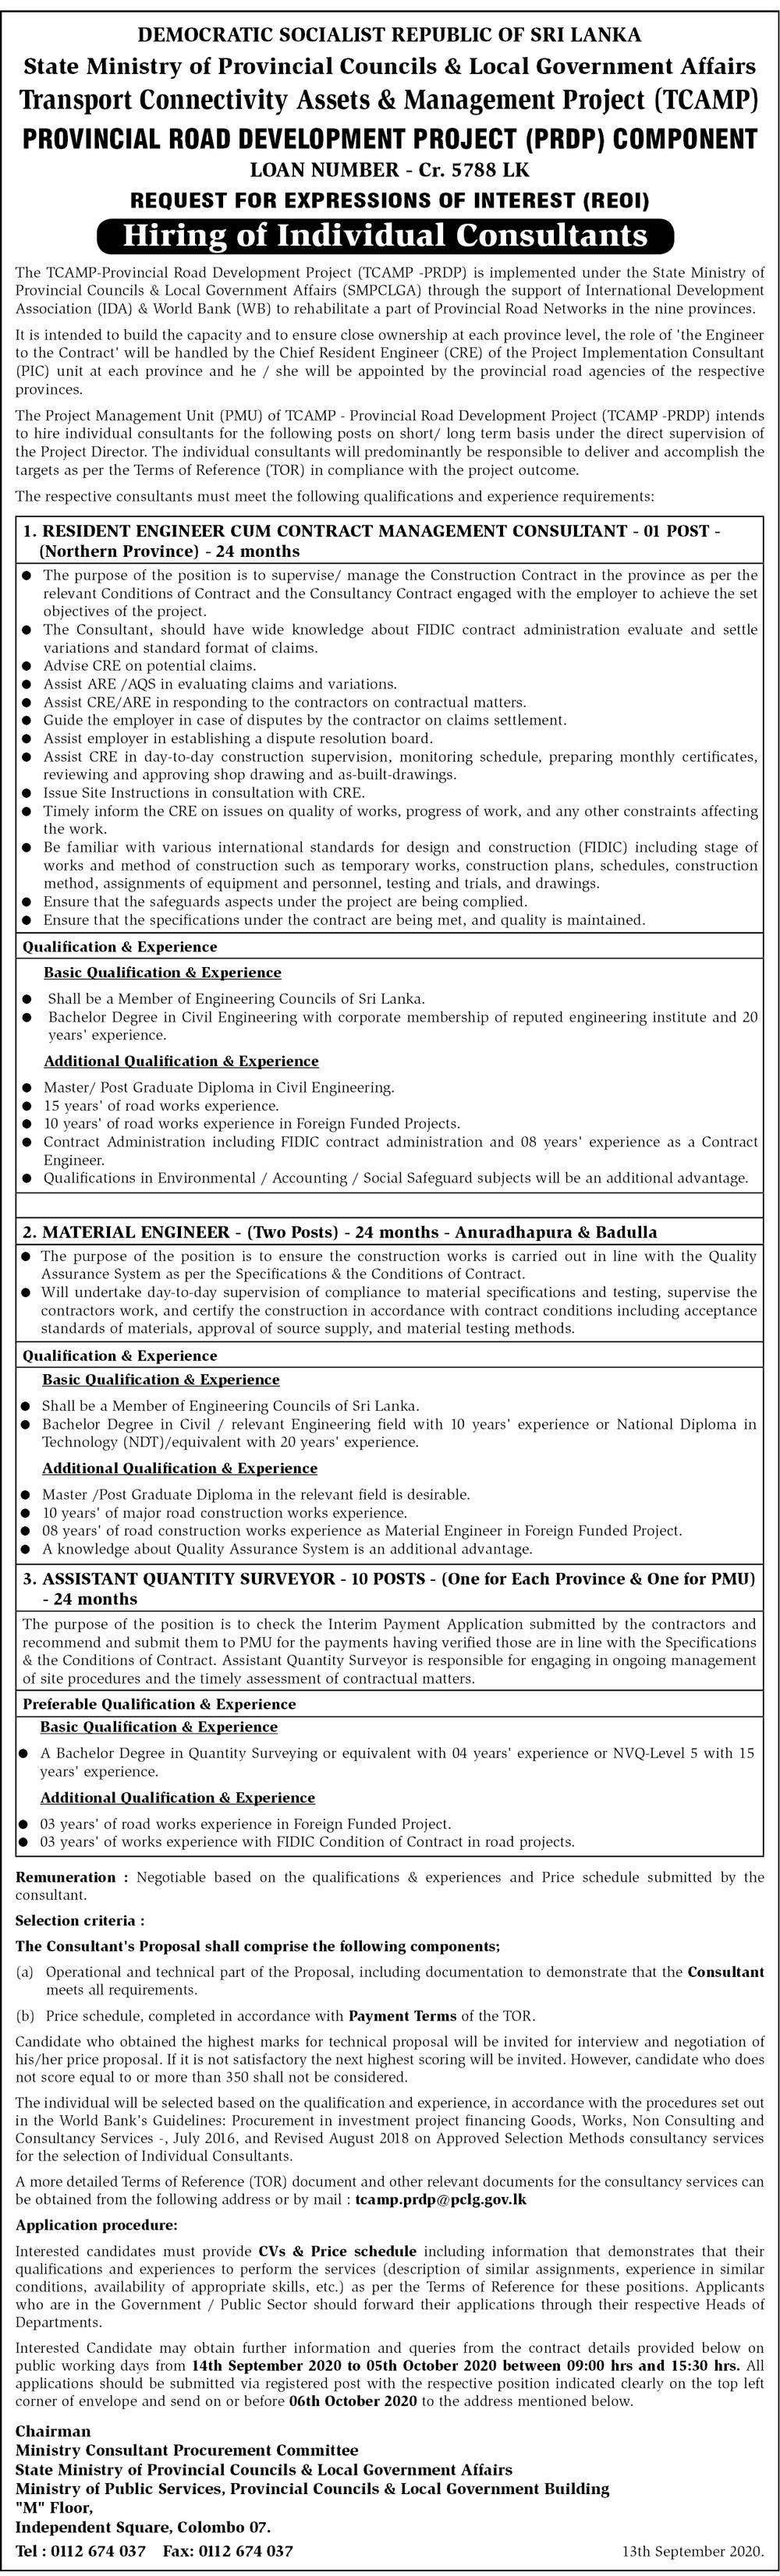 Resident Engineer cum Contract Management Consultant, Material Engineer, Assistant Quantity Surveyor - State Ministry of Provincial Councils & Local Government Affairs